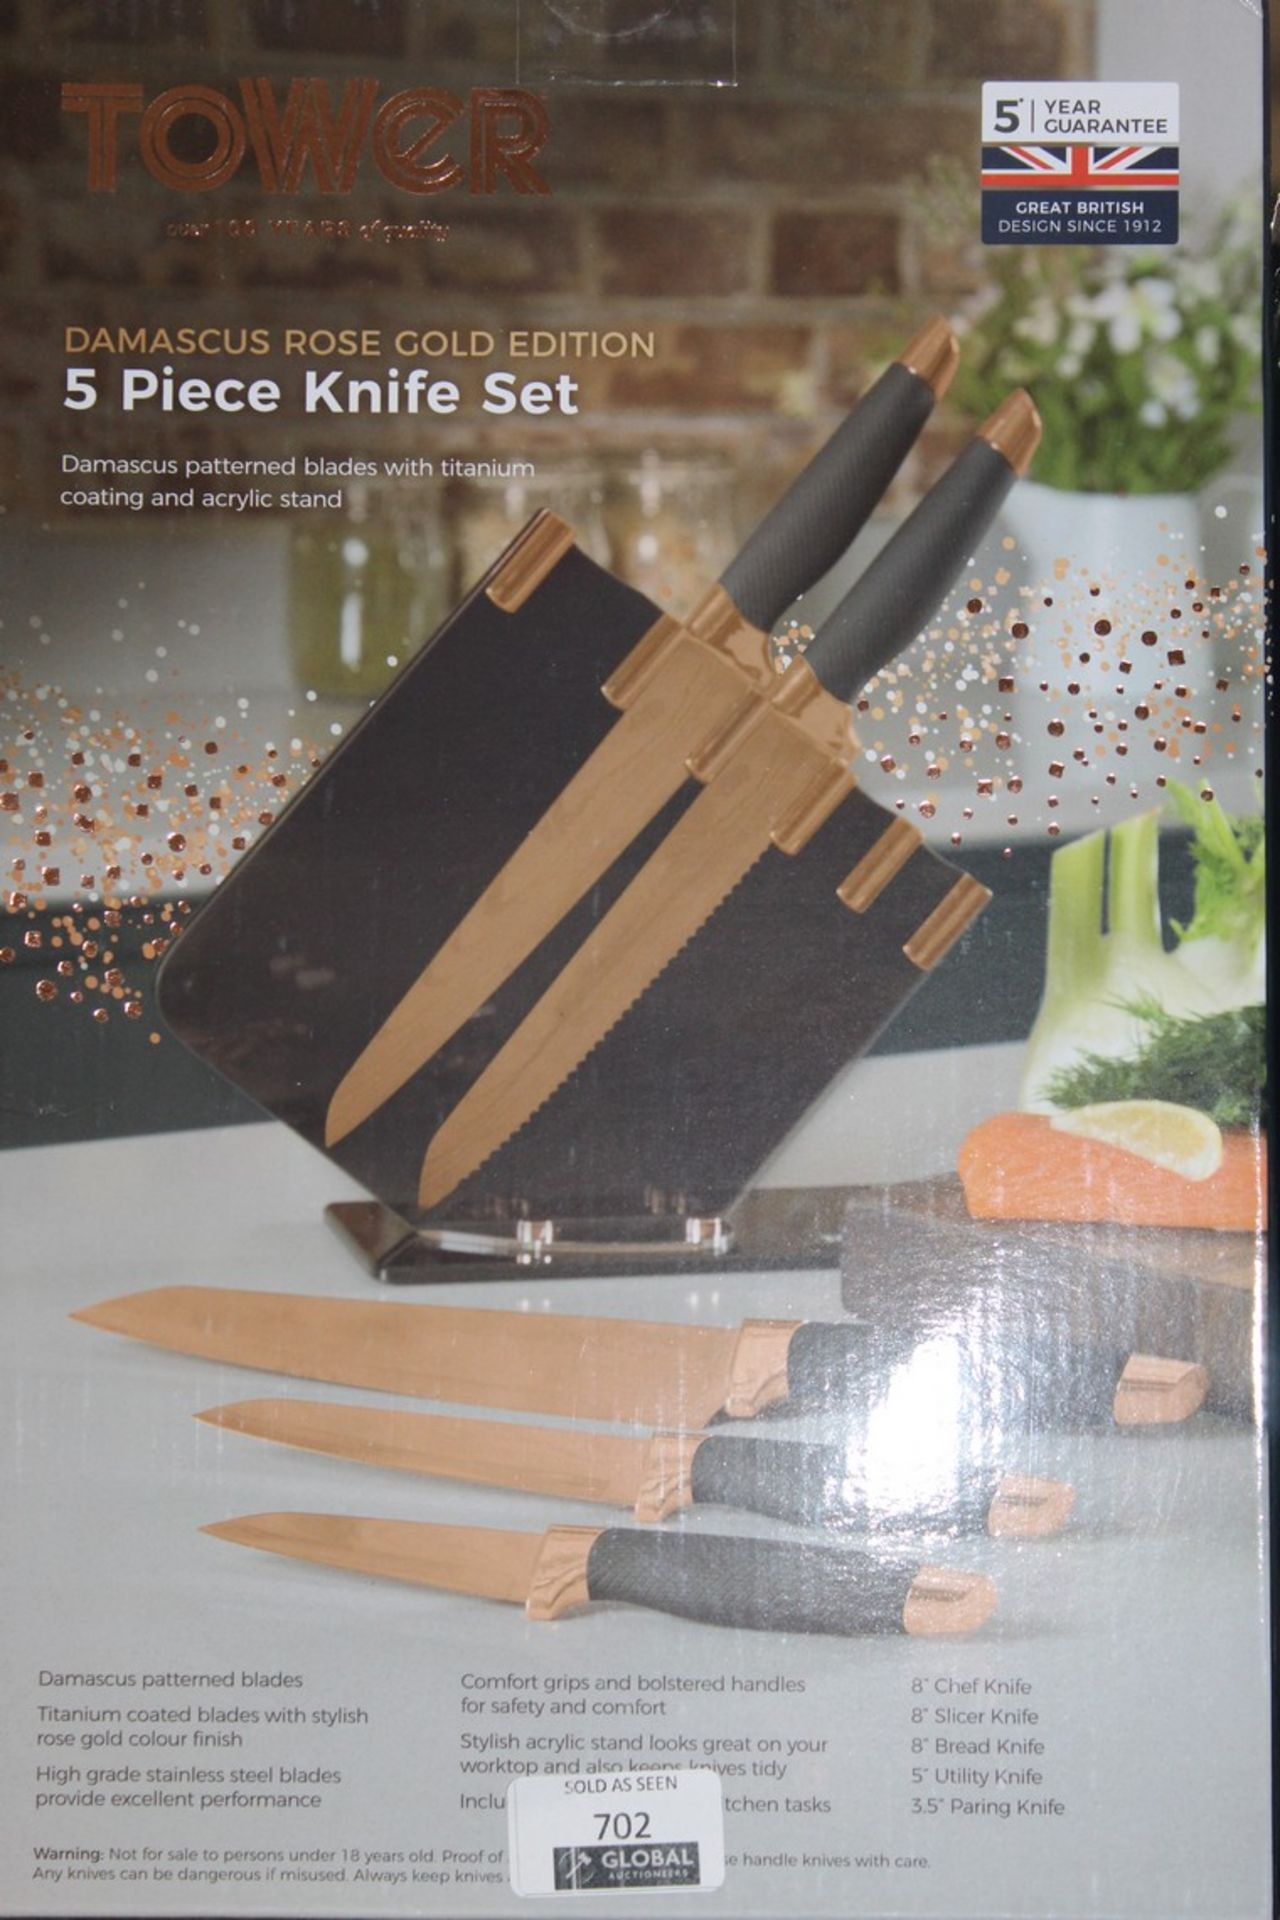 Lot 702 - Boxed Tower Demasks Rose Gold Edition 5 Piece Knife Set RRP £80 (Pictures Are For Illustration